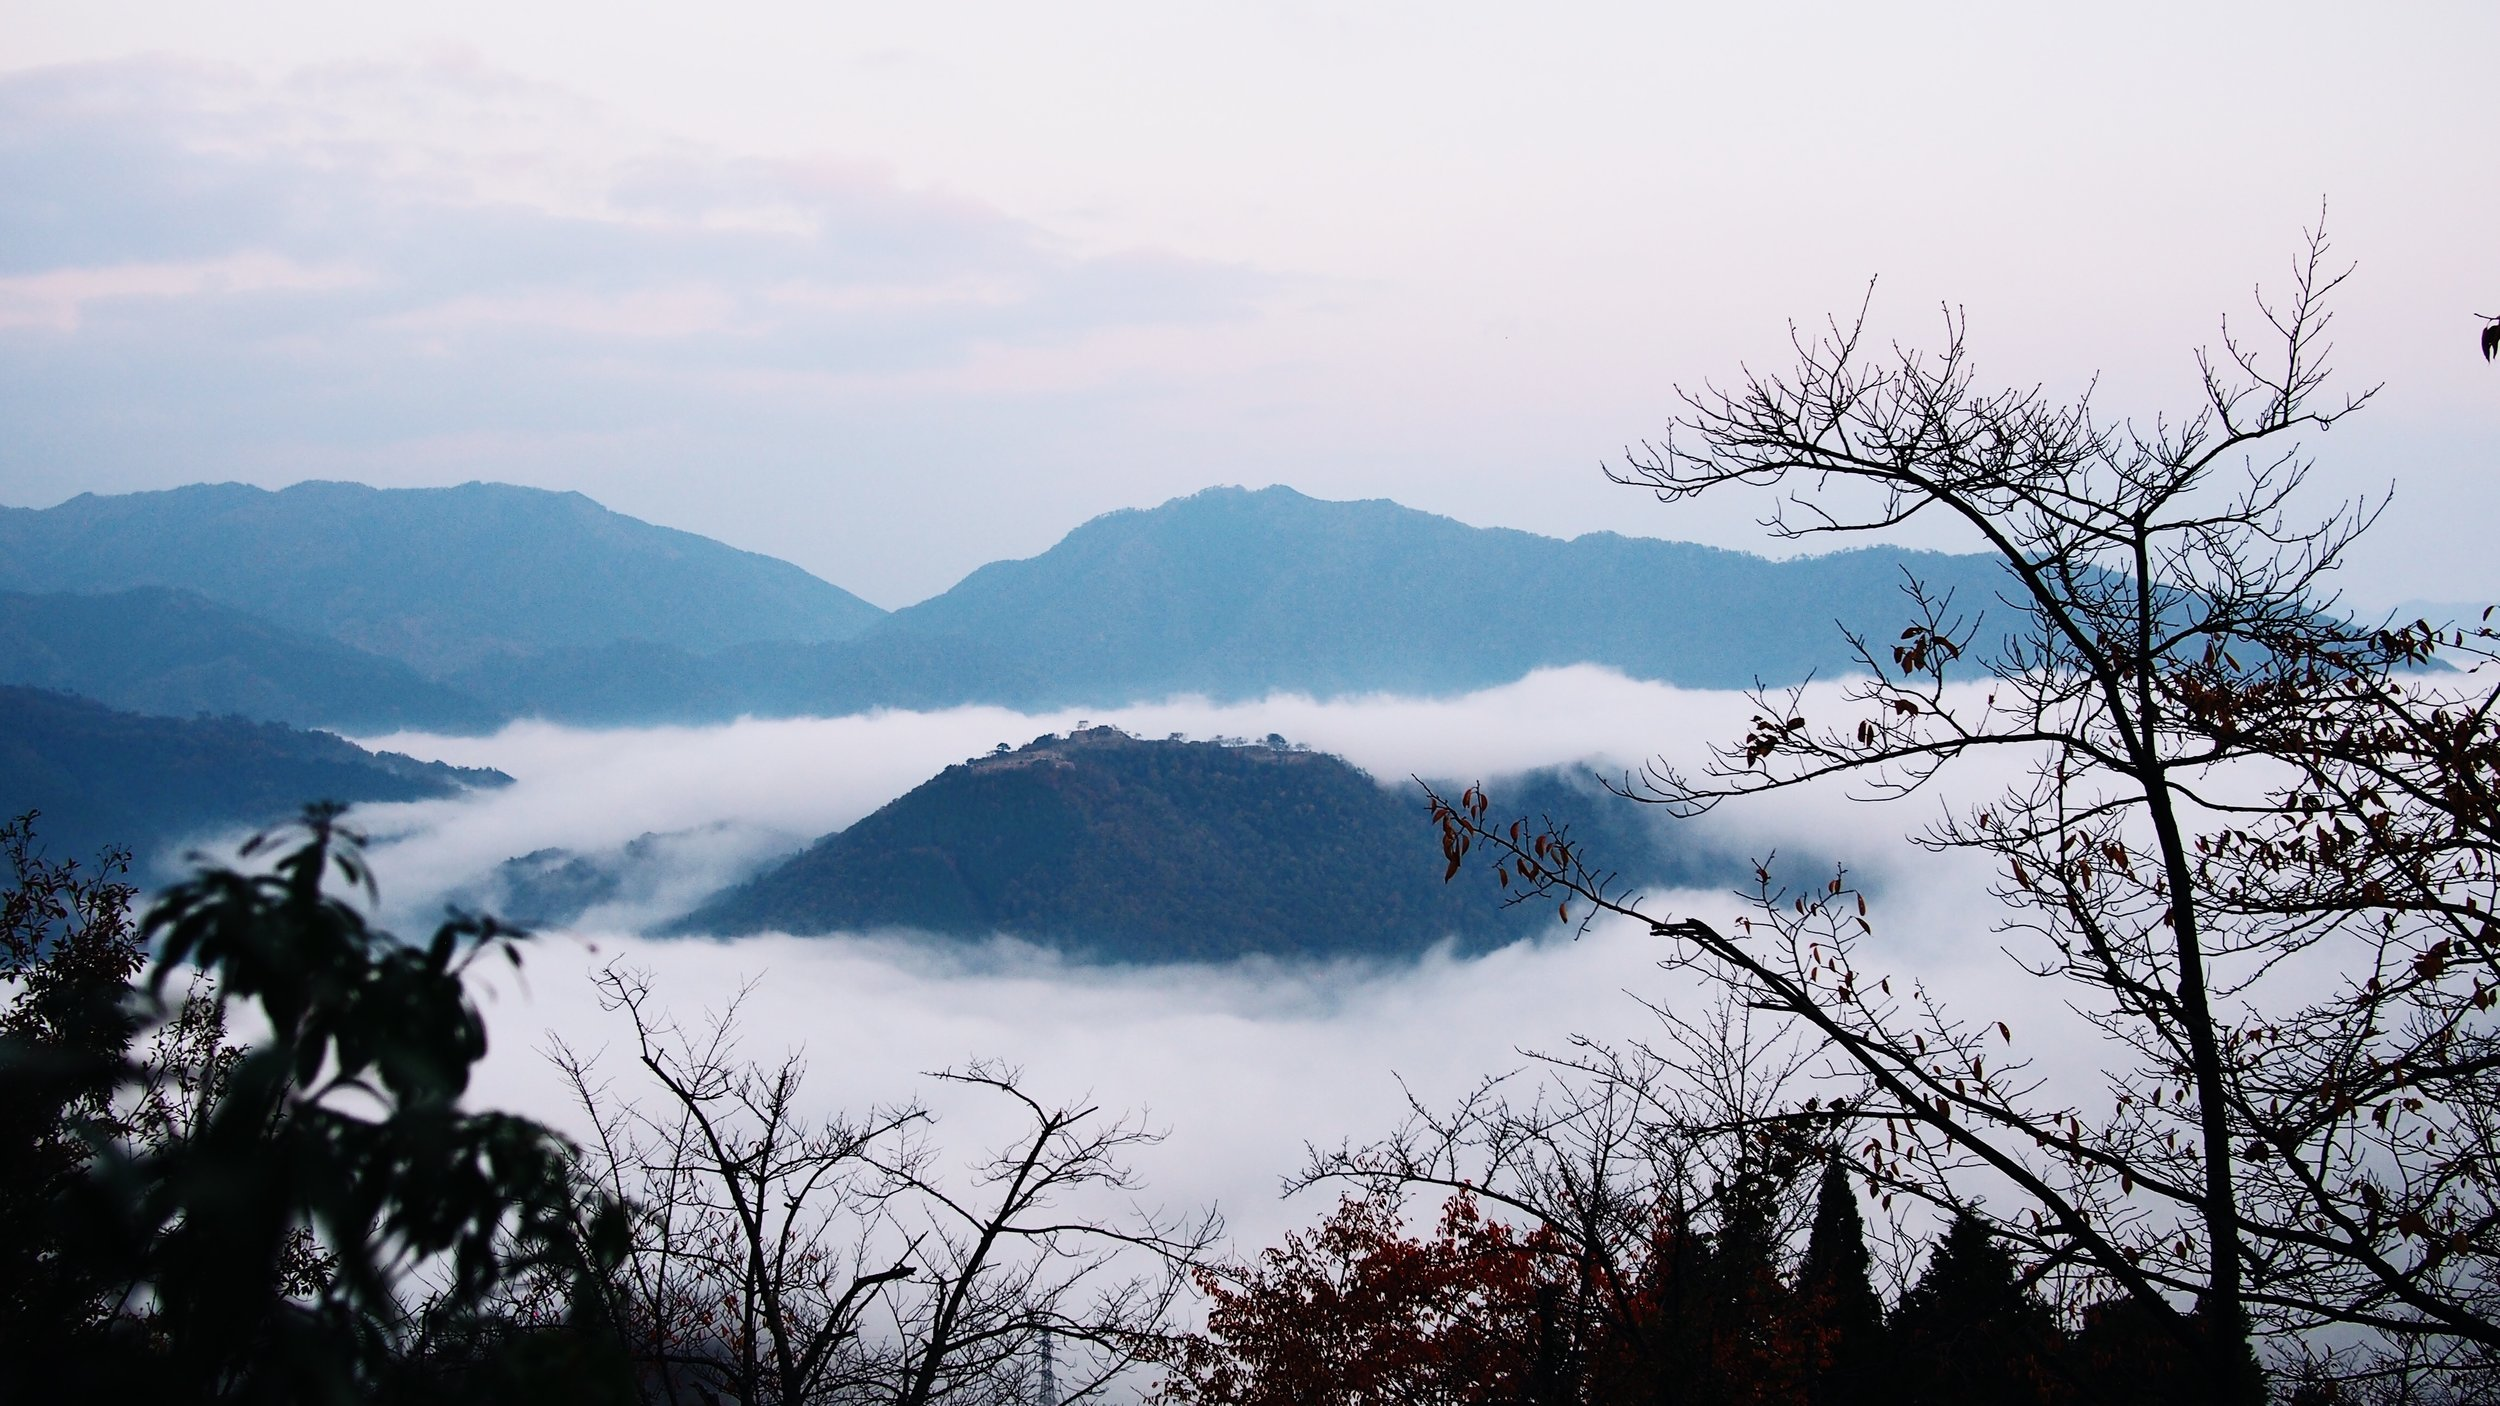 The Takeda Castle Ruins in the early morning light